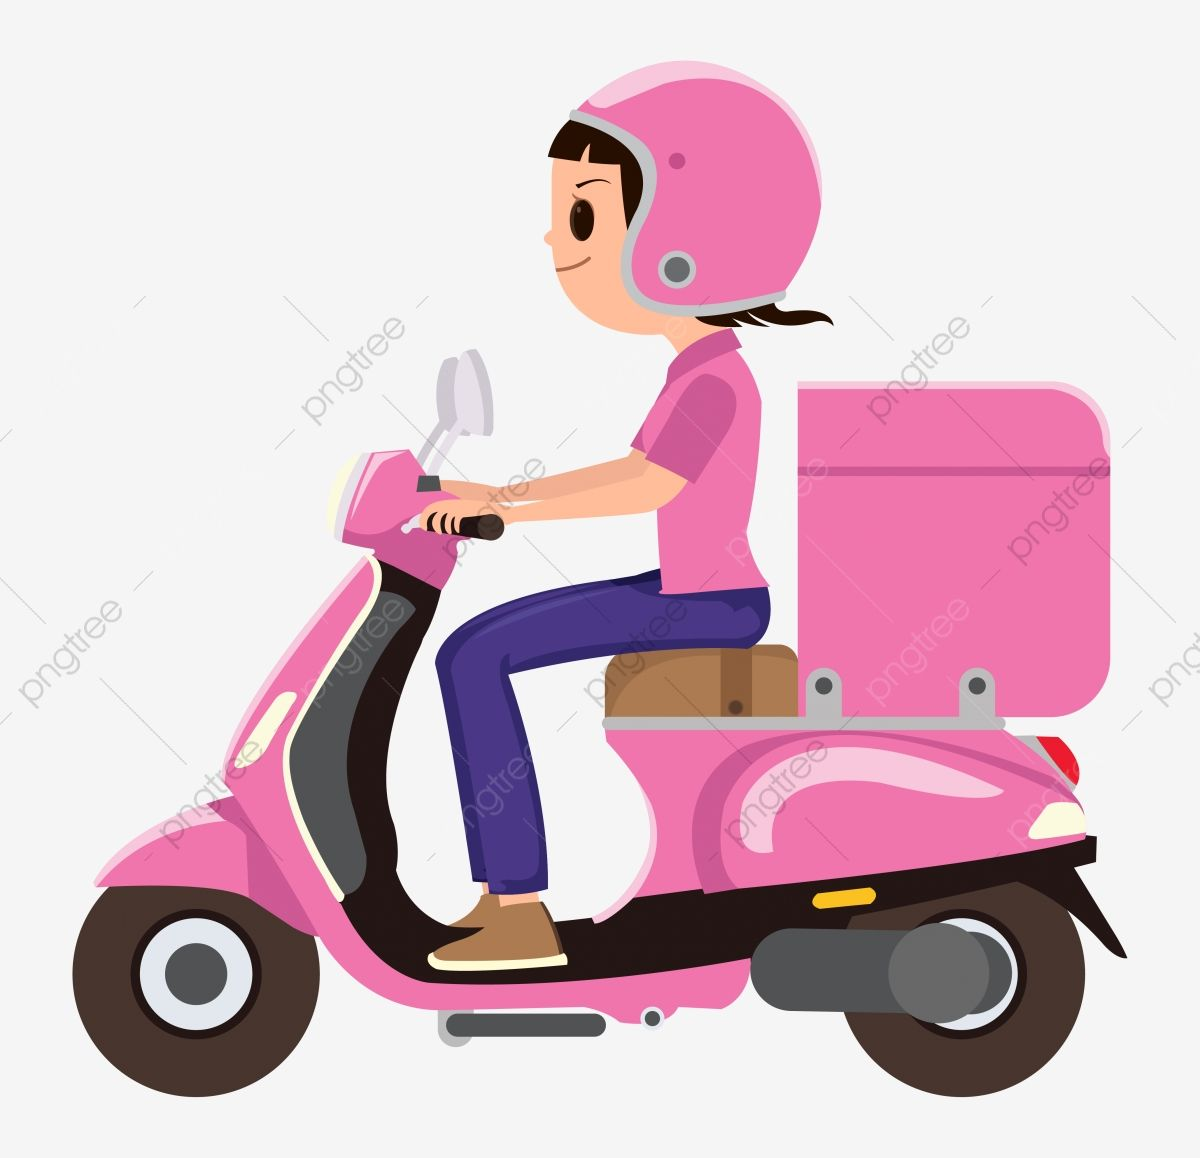 A Girl Riding A Pink Delivery Scooter Man Delivery Service Png